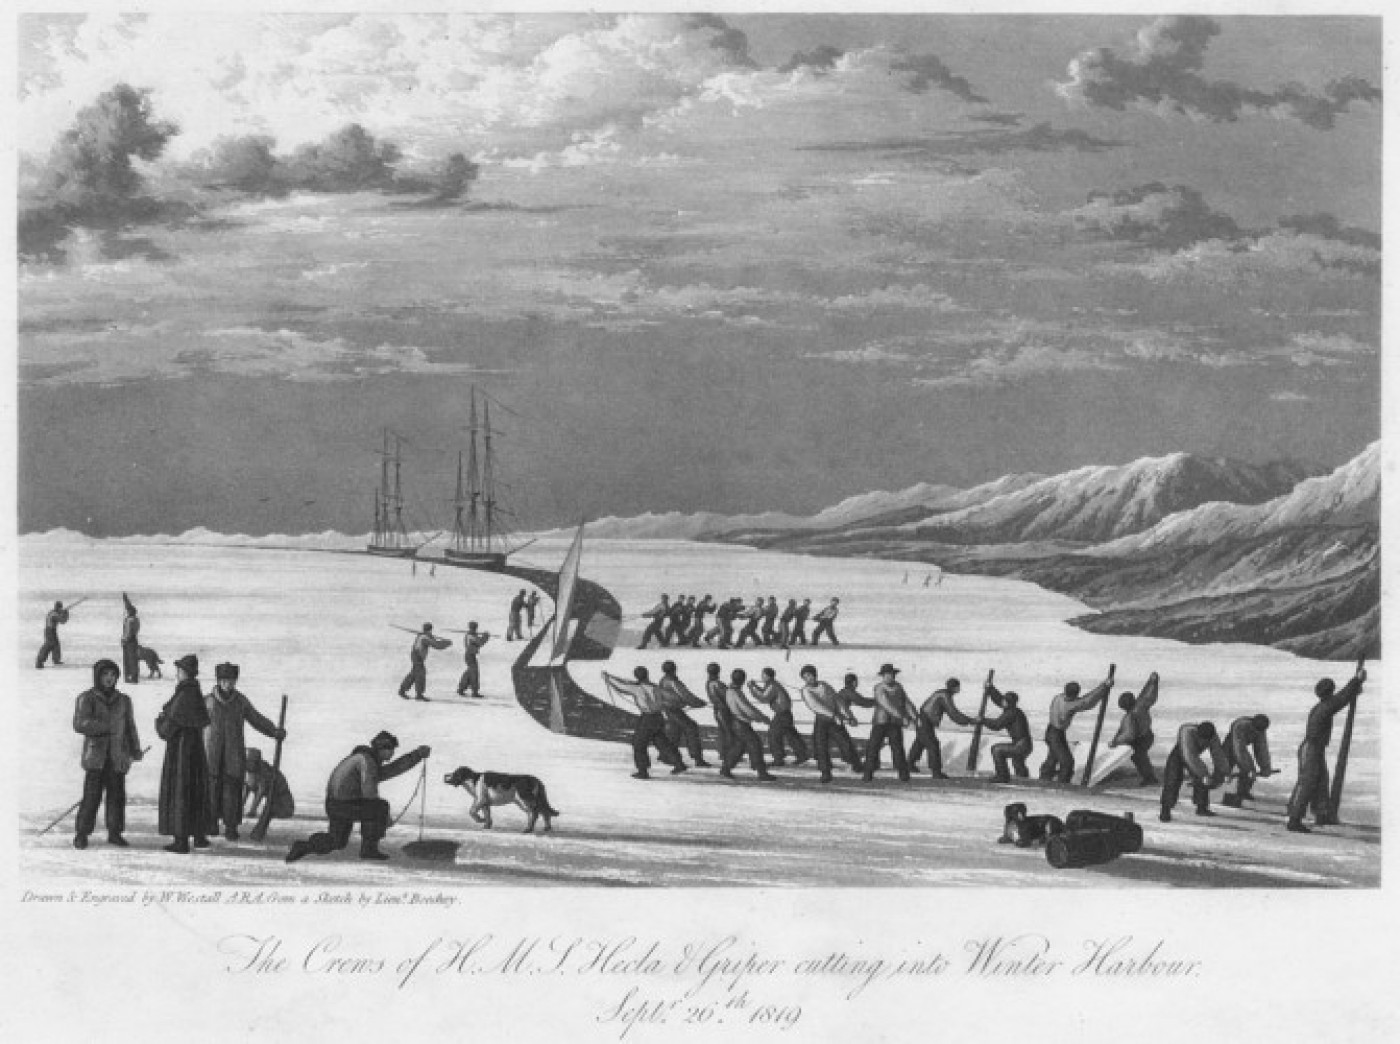 The Crews of H M S Hecla & Griper Cutting into Winter Harbour, Septr 26th 1819